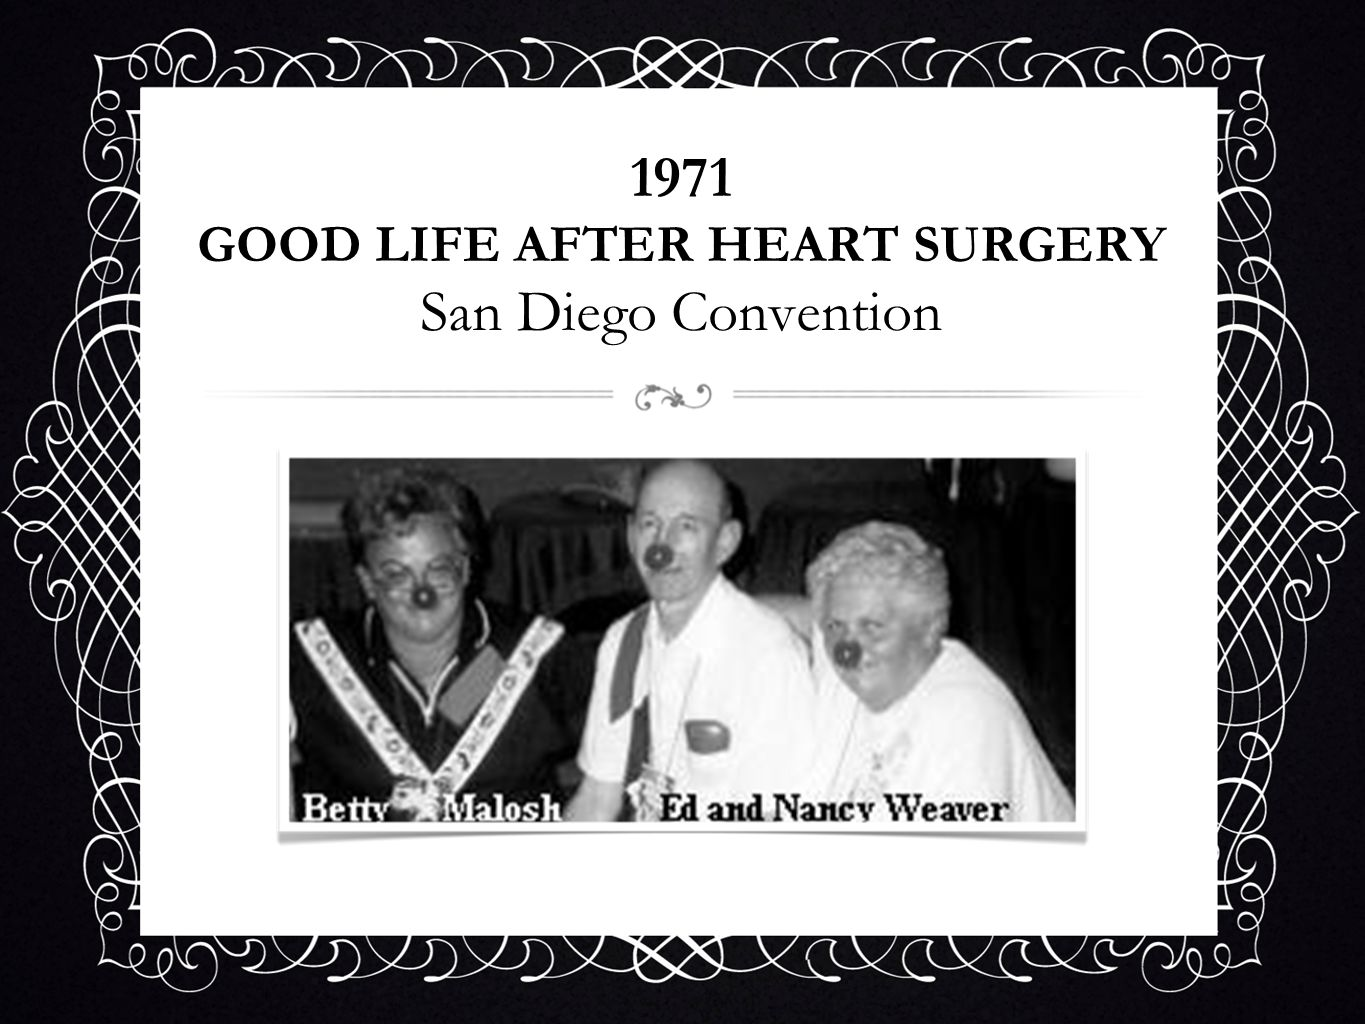 1971 GOOD LIFE AFTER HEART SURGERY San Diego Convention